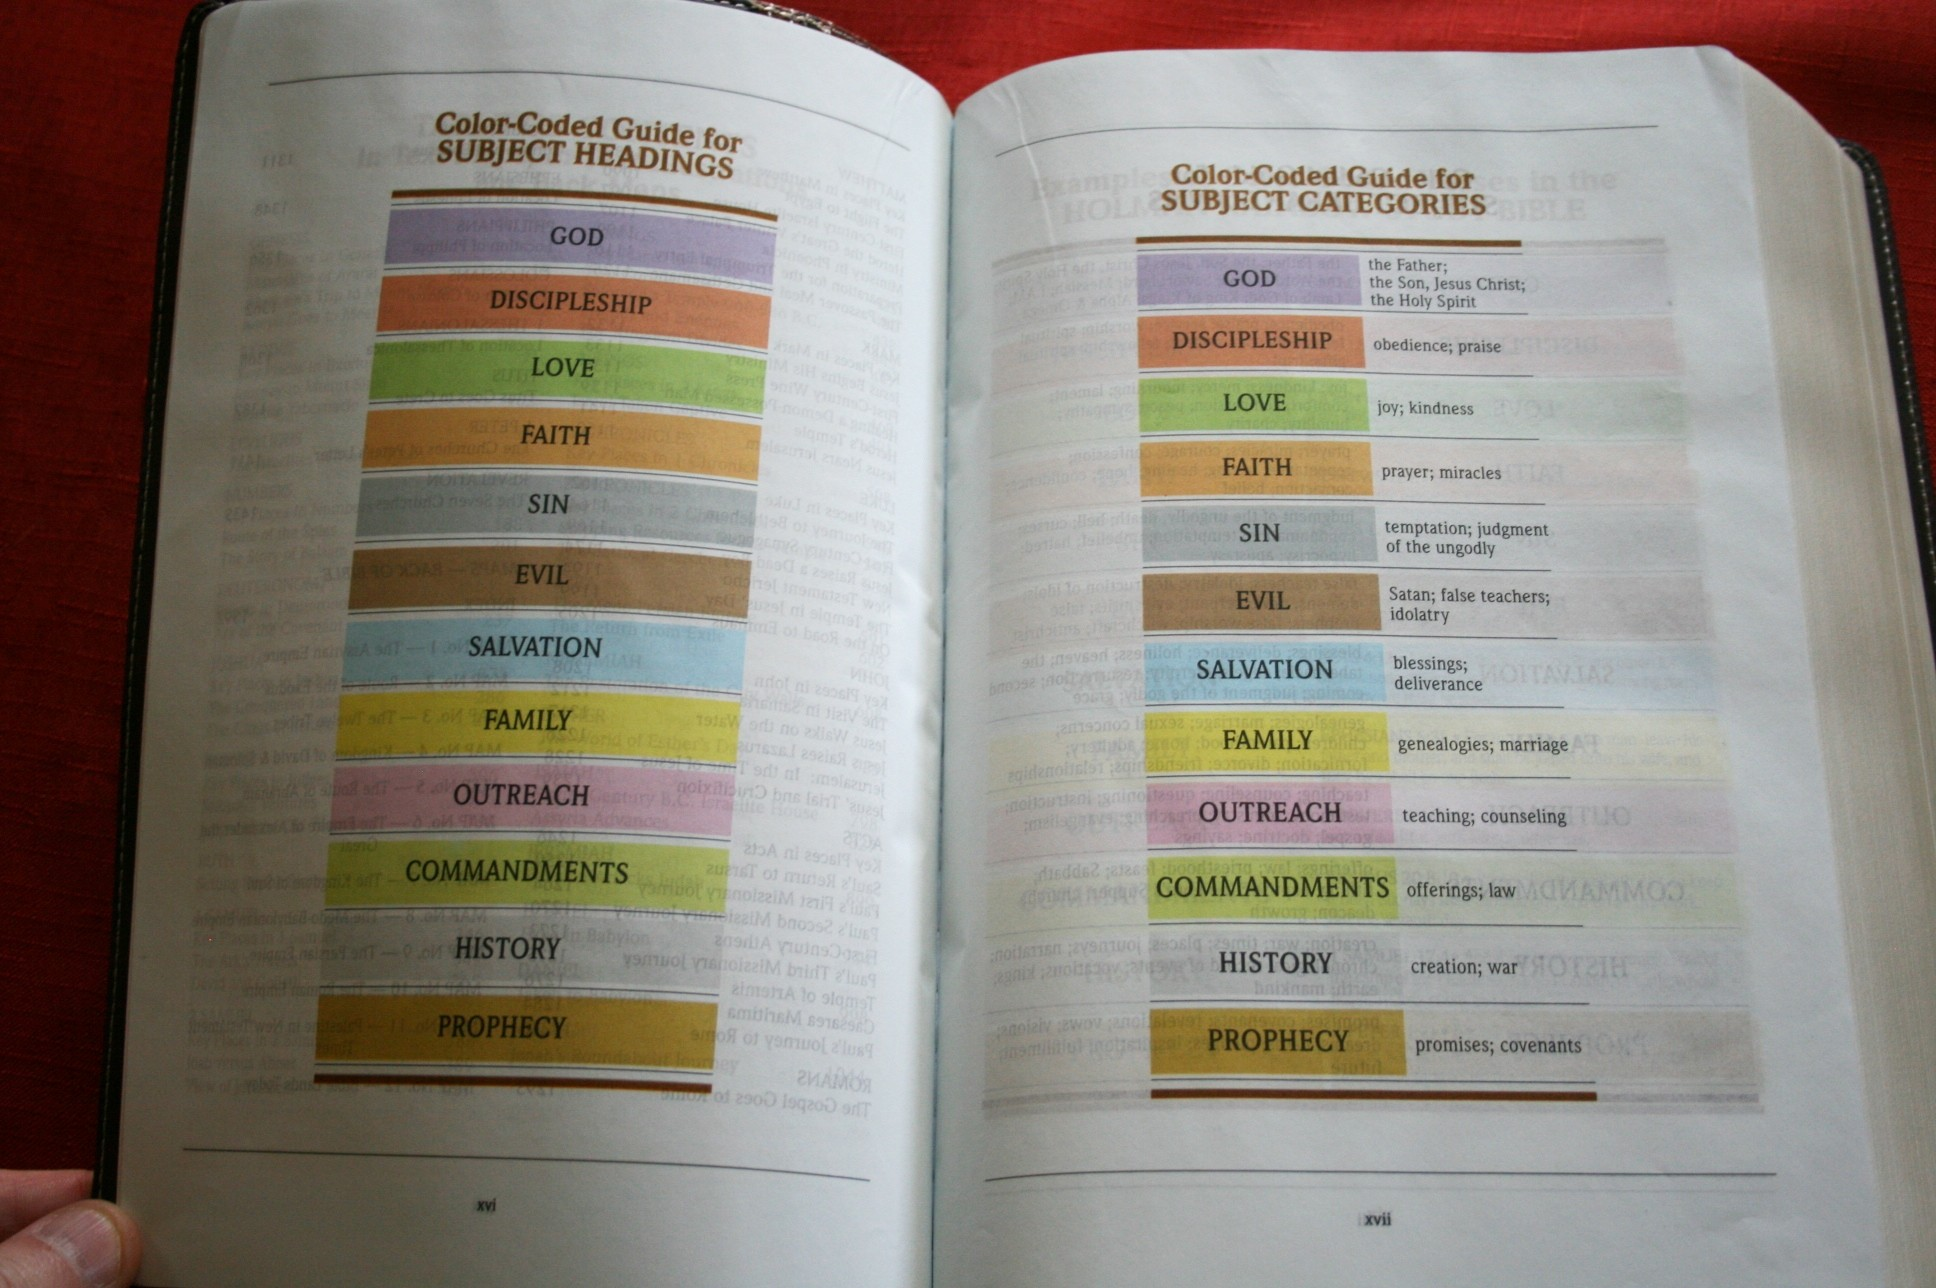 rainbow study bible color code guide